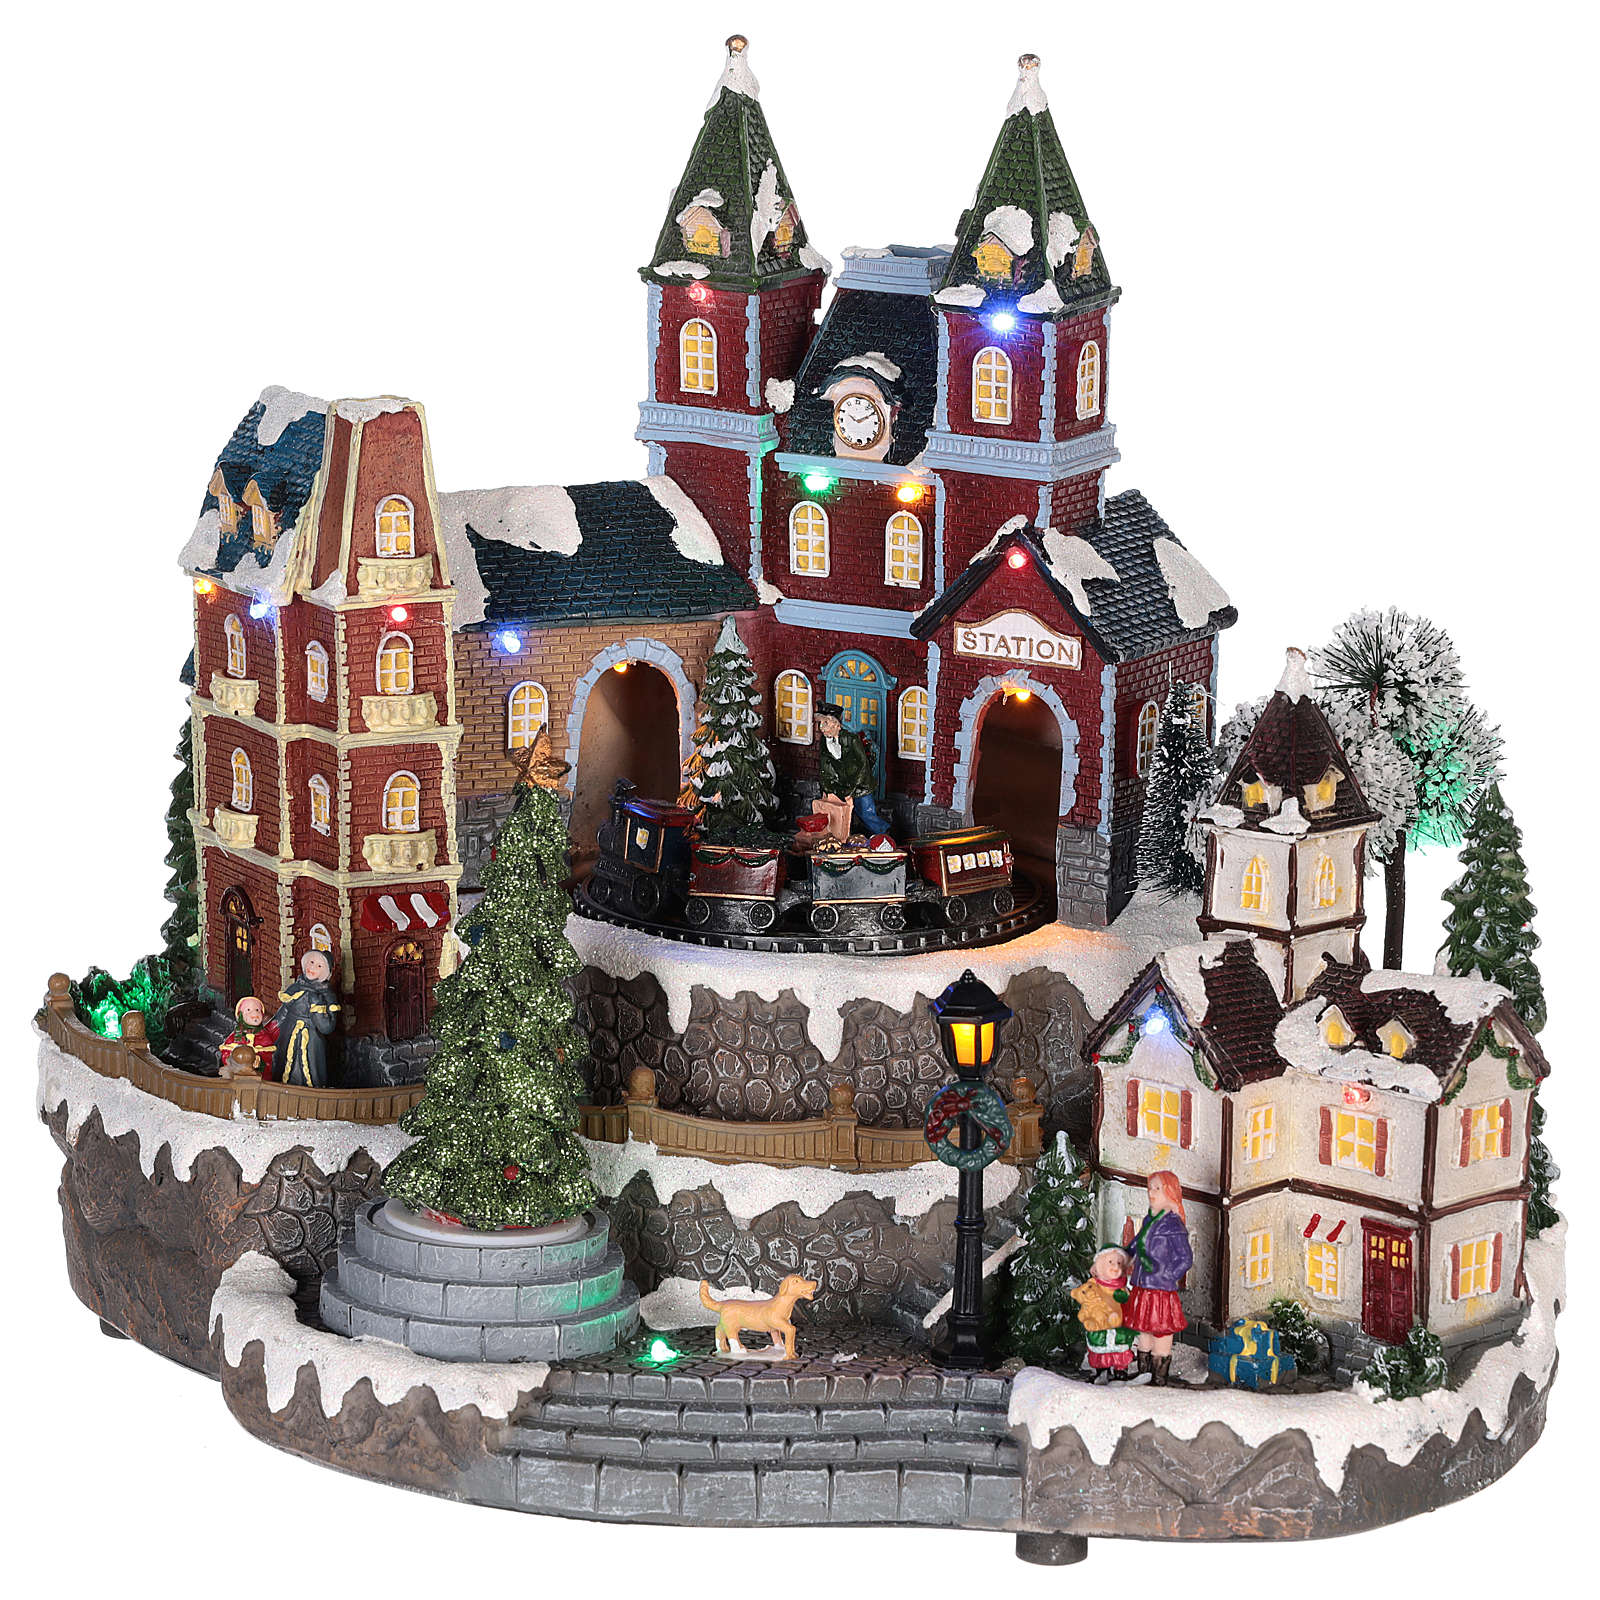 Christmas-themed train station 30x35x25 cm 3